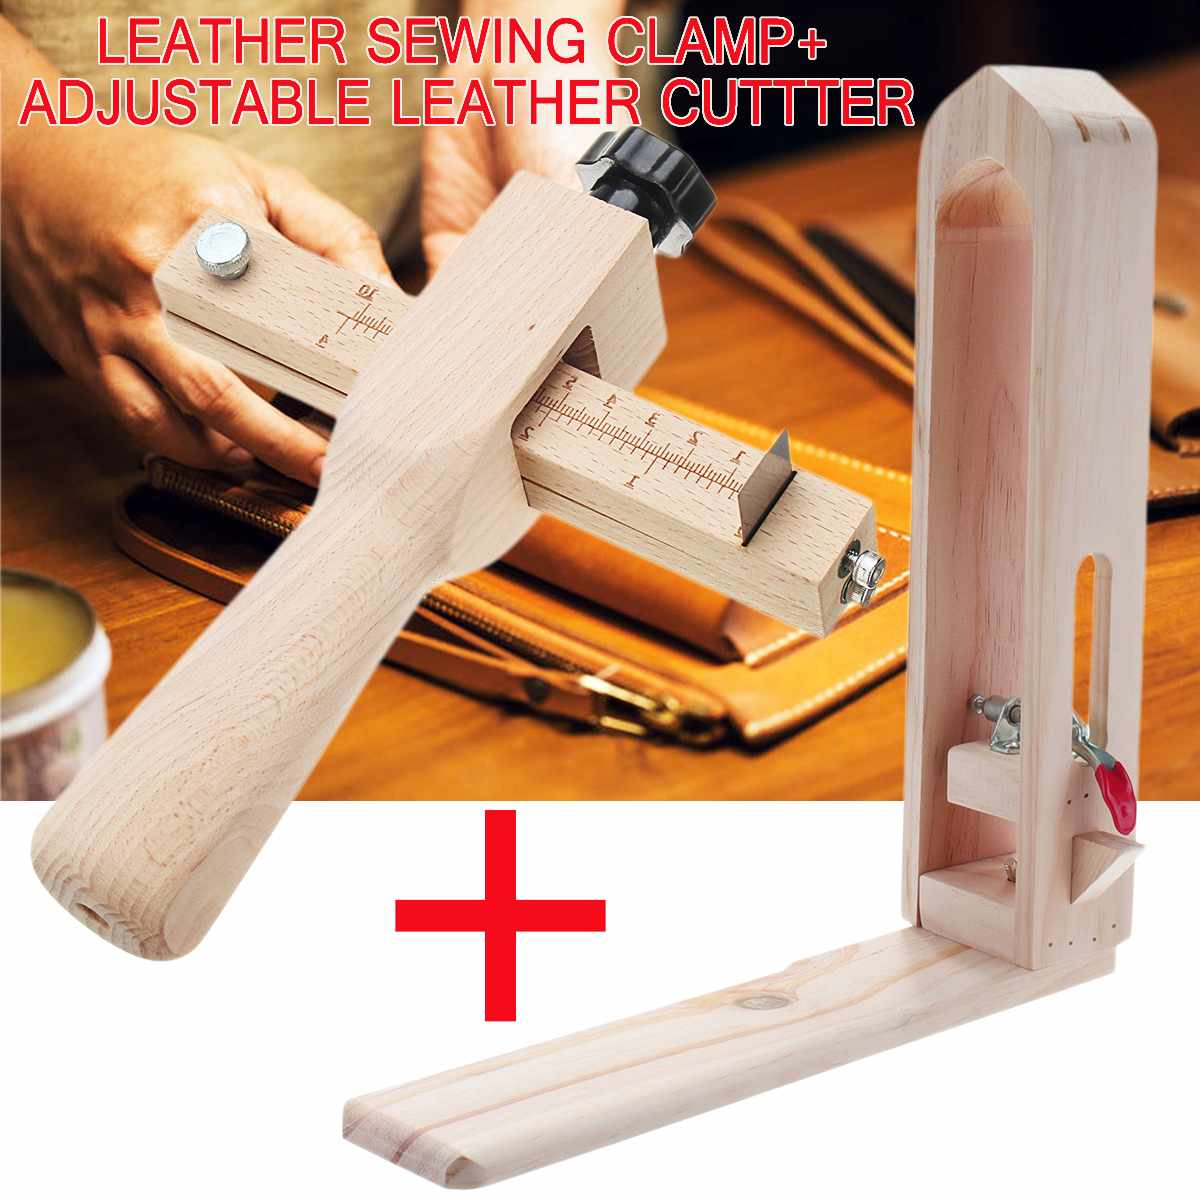 Adjustable Leather Strap Cutter Leathercraft Strip Belt DIY Hand Cutting Wooden Strip Cutter 5 Blades With Leather Sewing Tools